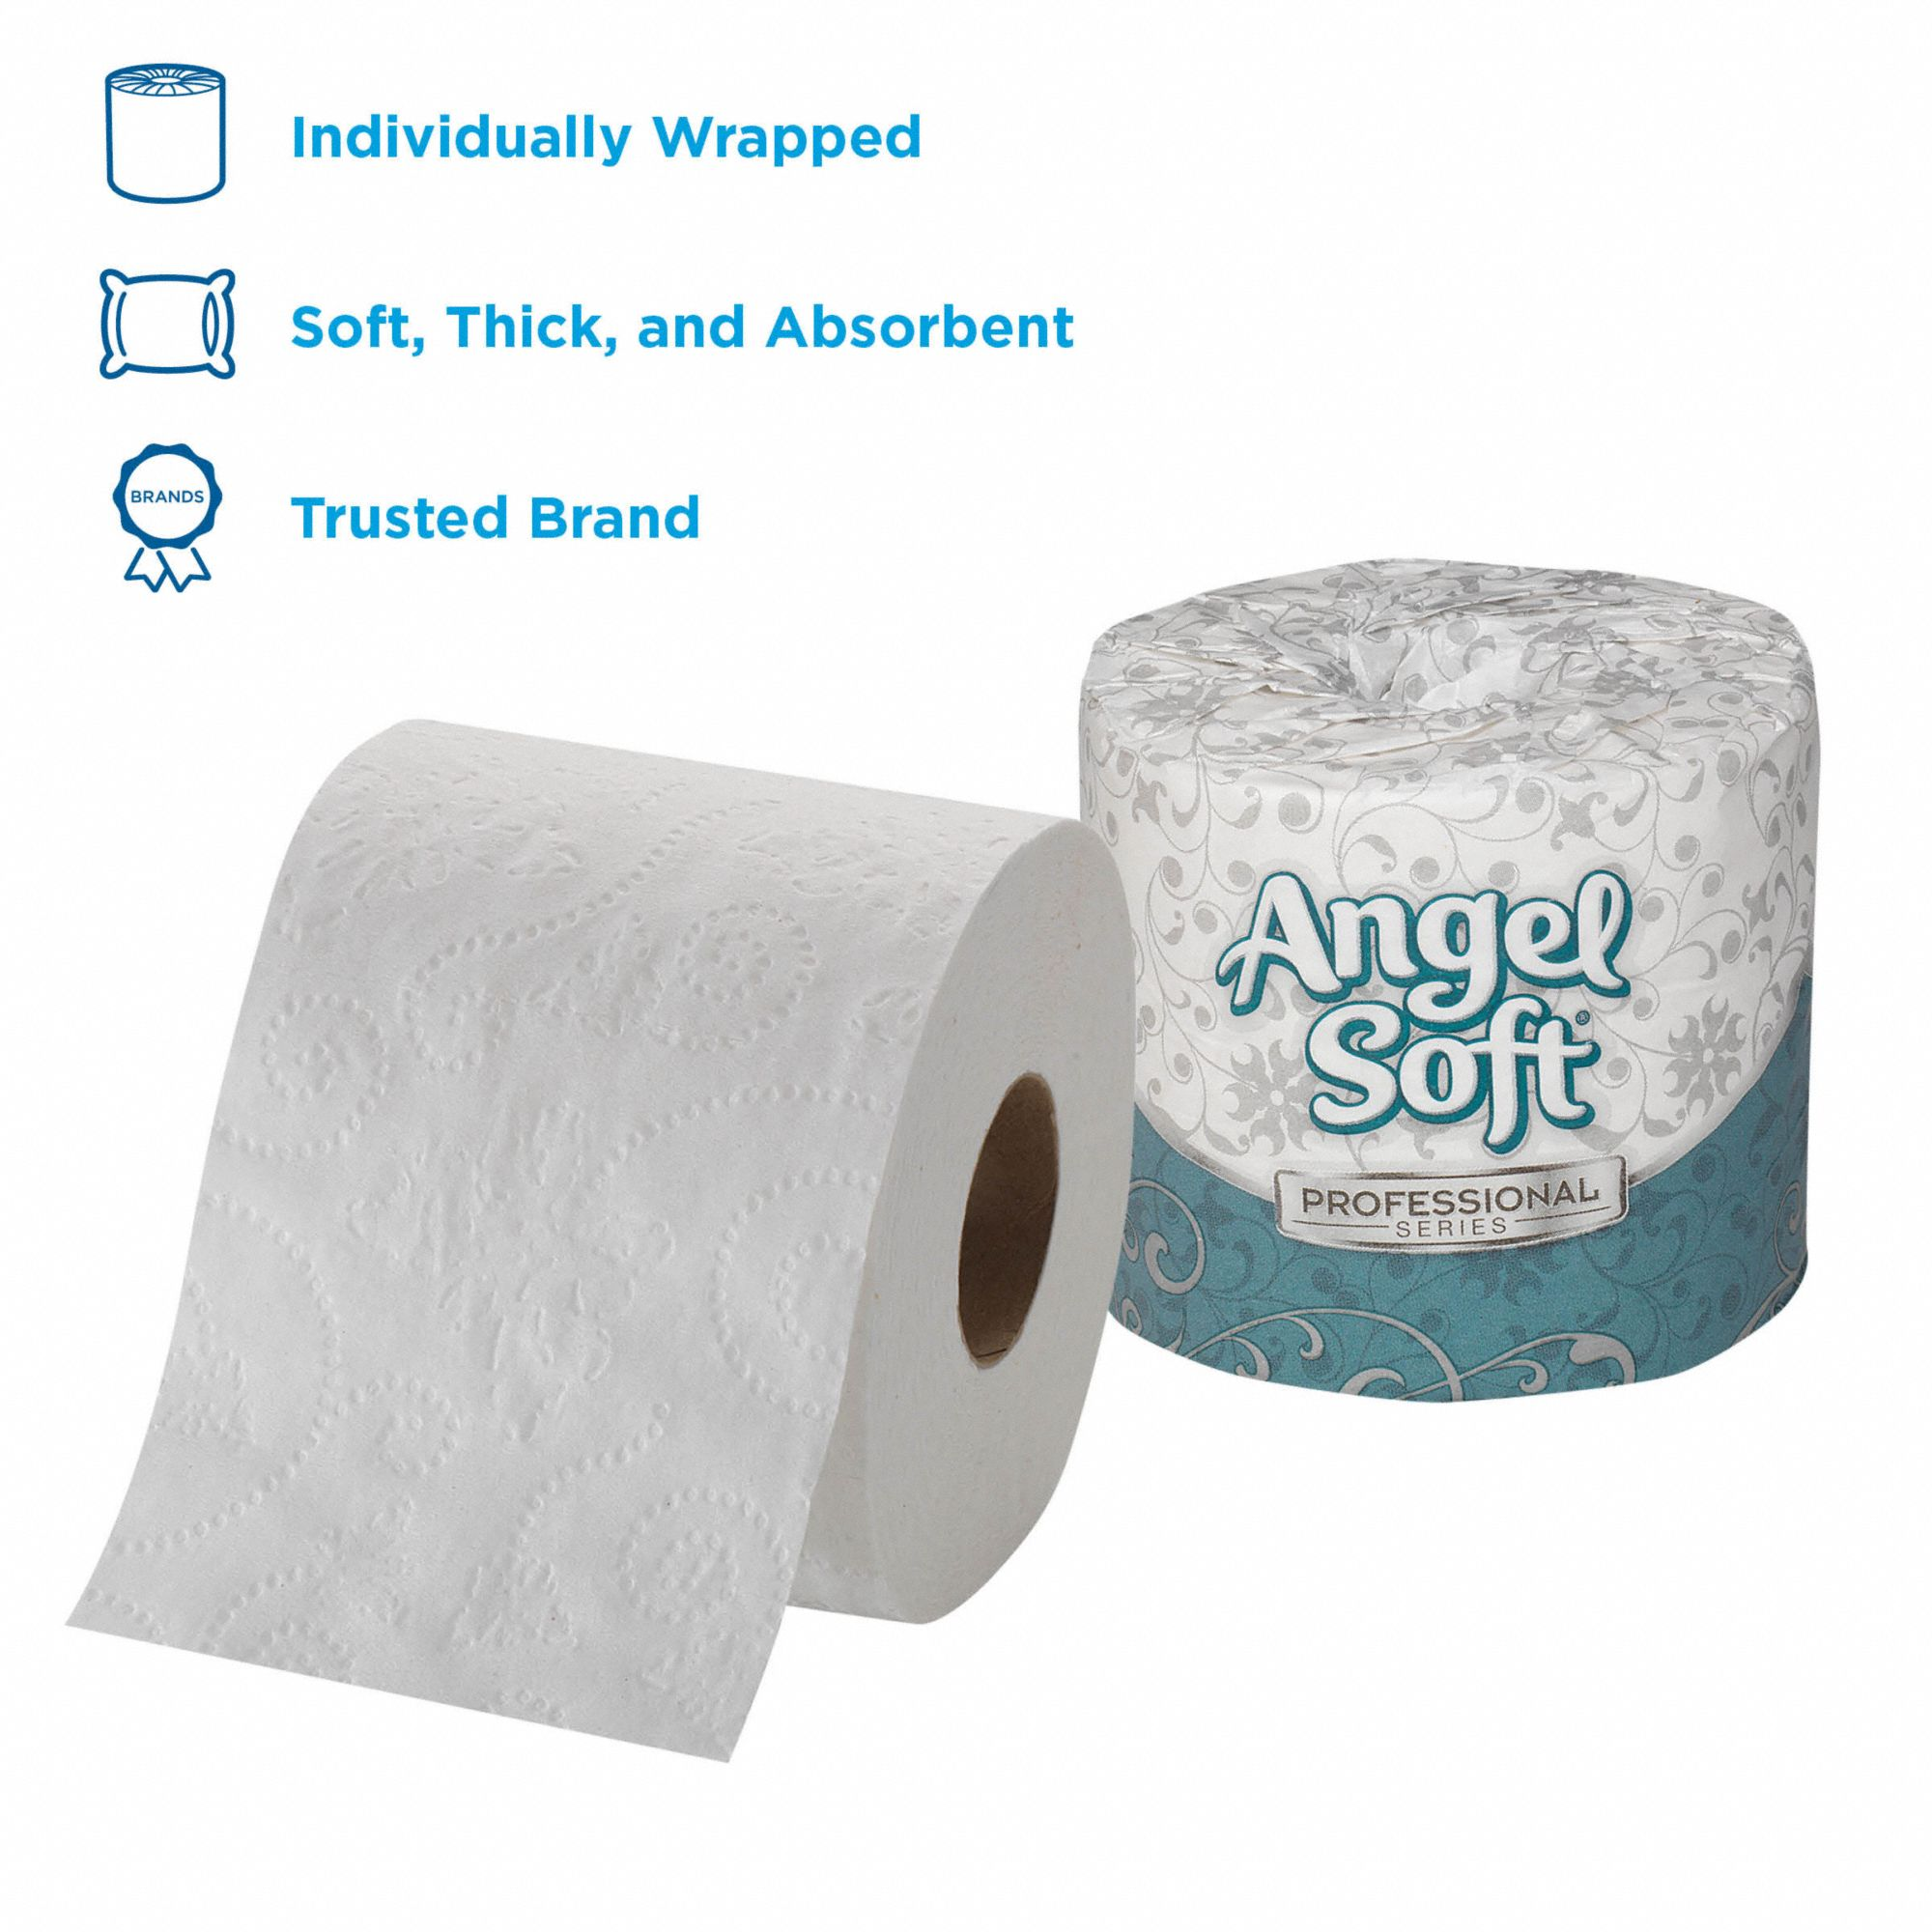 Whats the circumference of a toilet paper roll